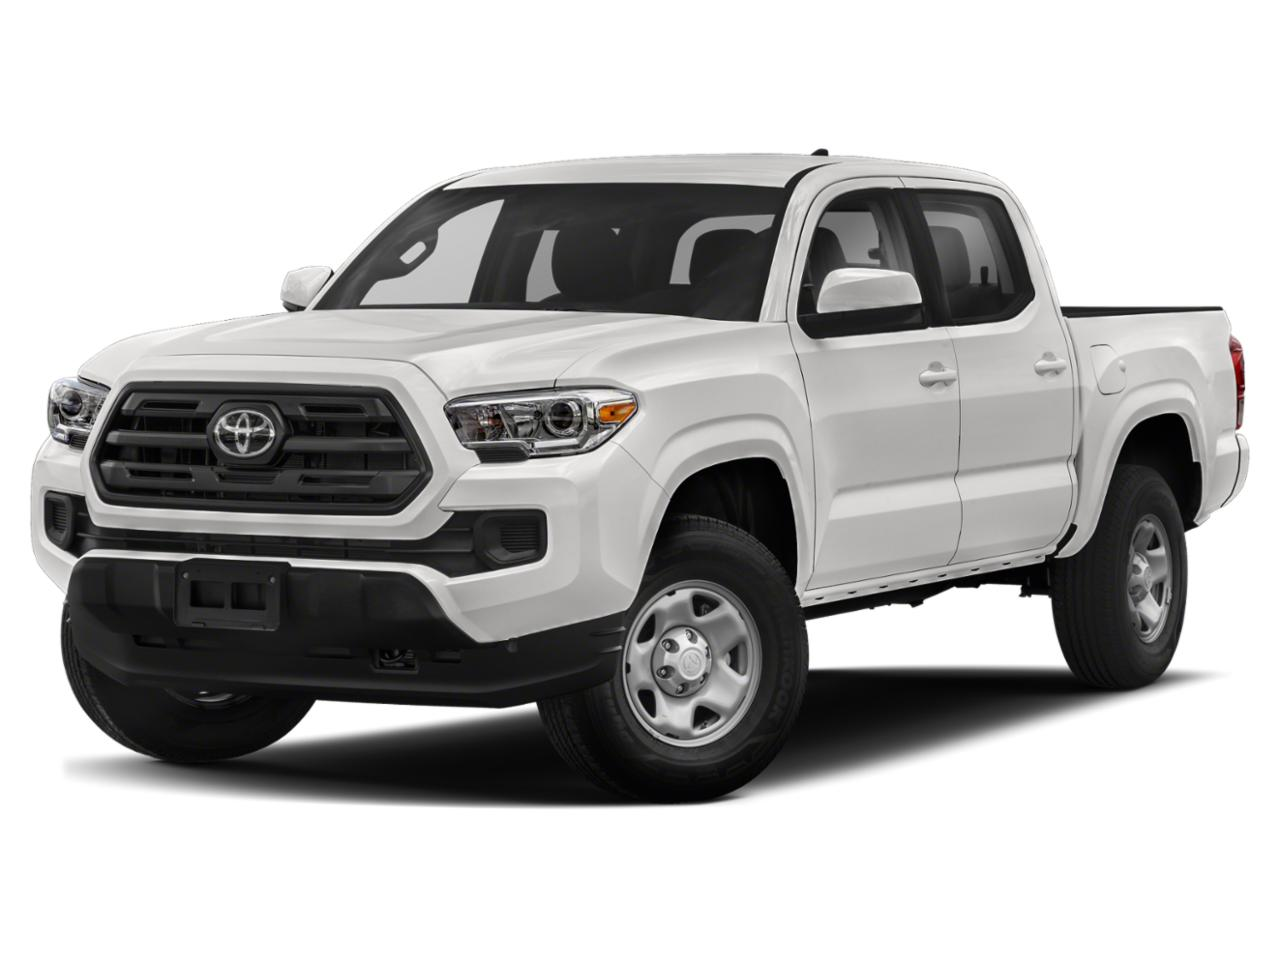 2019 Toyota Tacoma 4WD Vehicle Photo in Manhattan, KS 66502